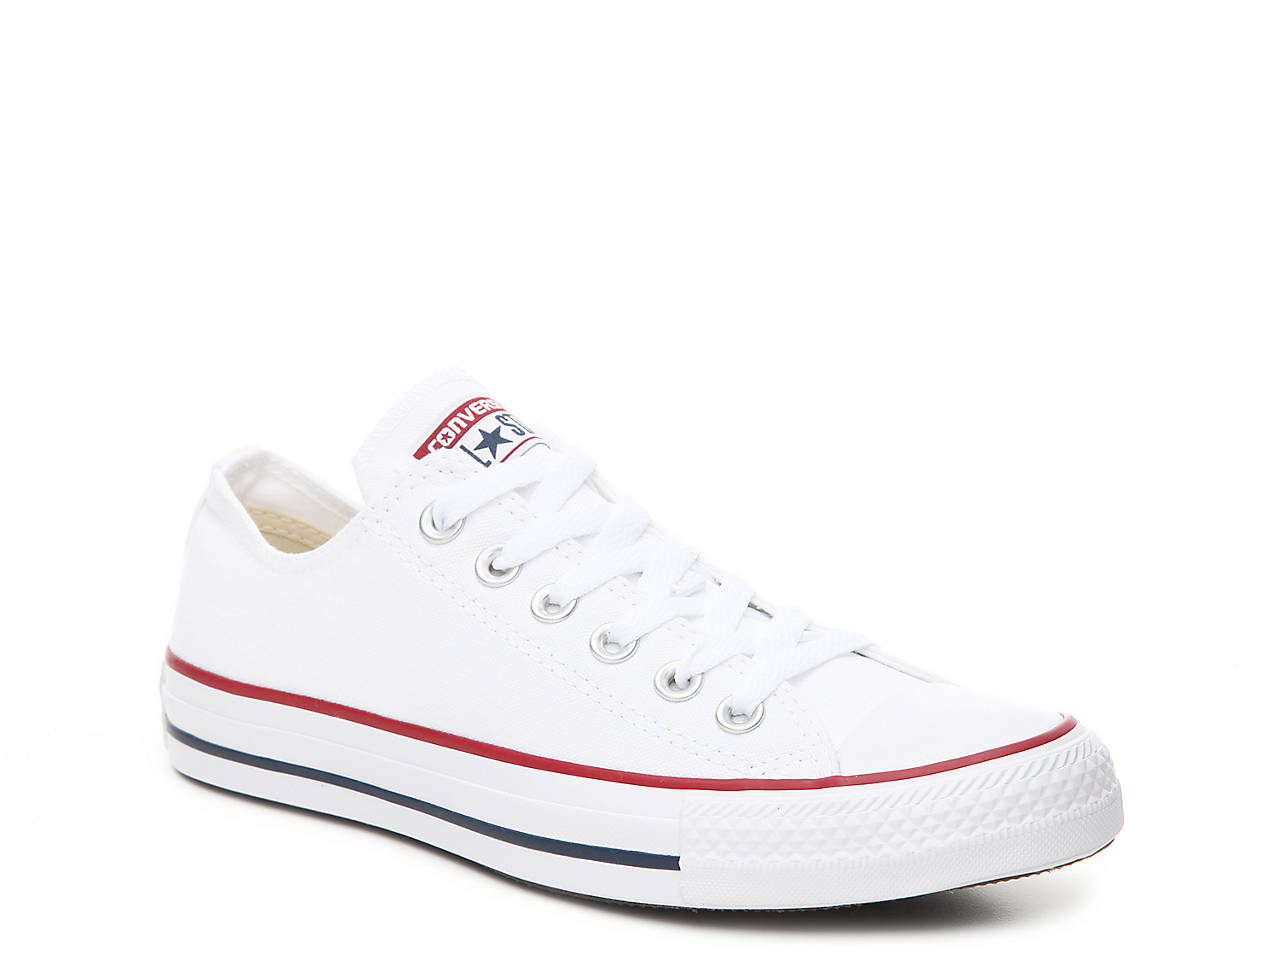 Converse Chuck Taylor All Star Sneaker - Women s Women s Shoes  6683a9de3a